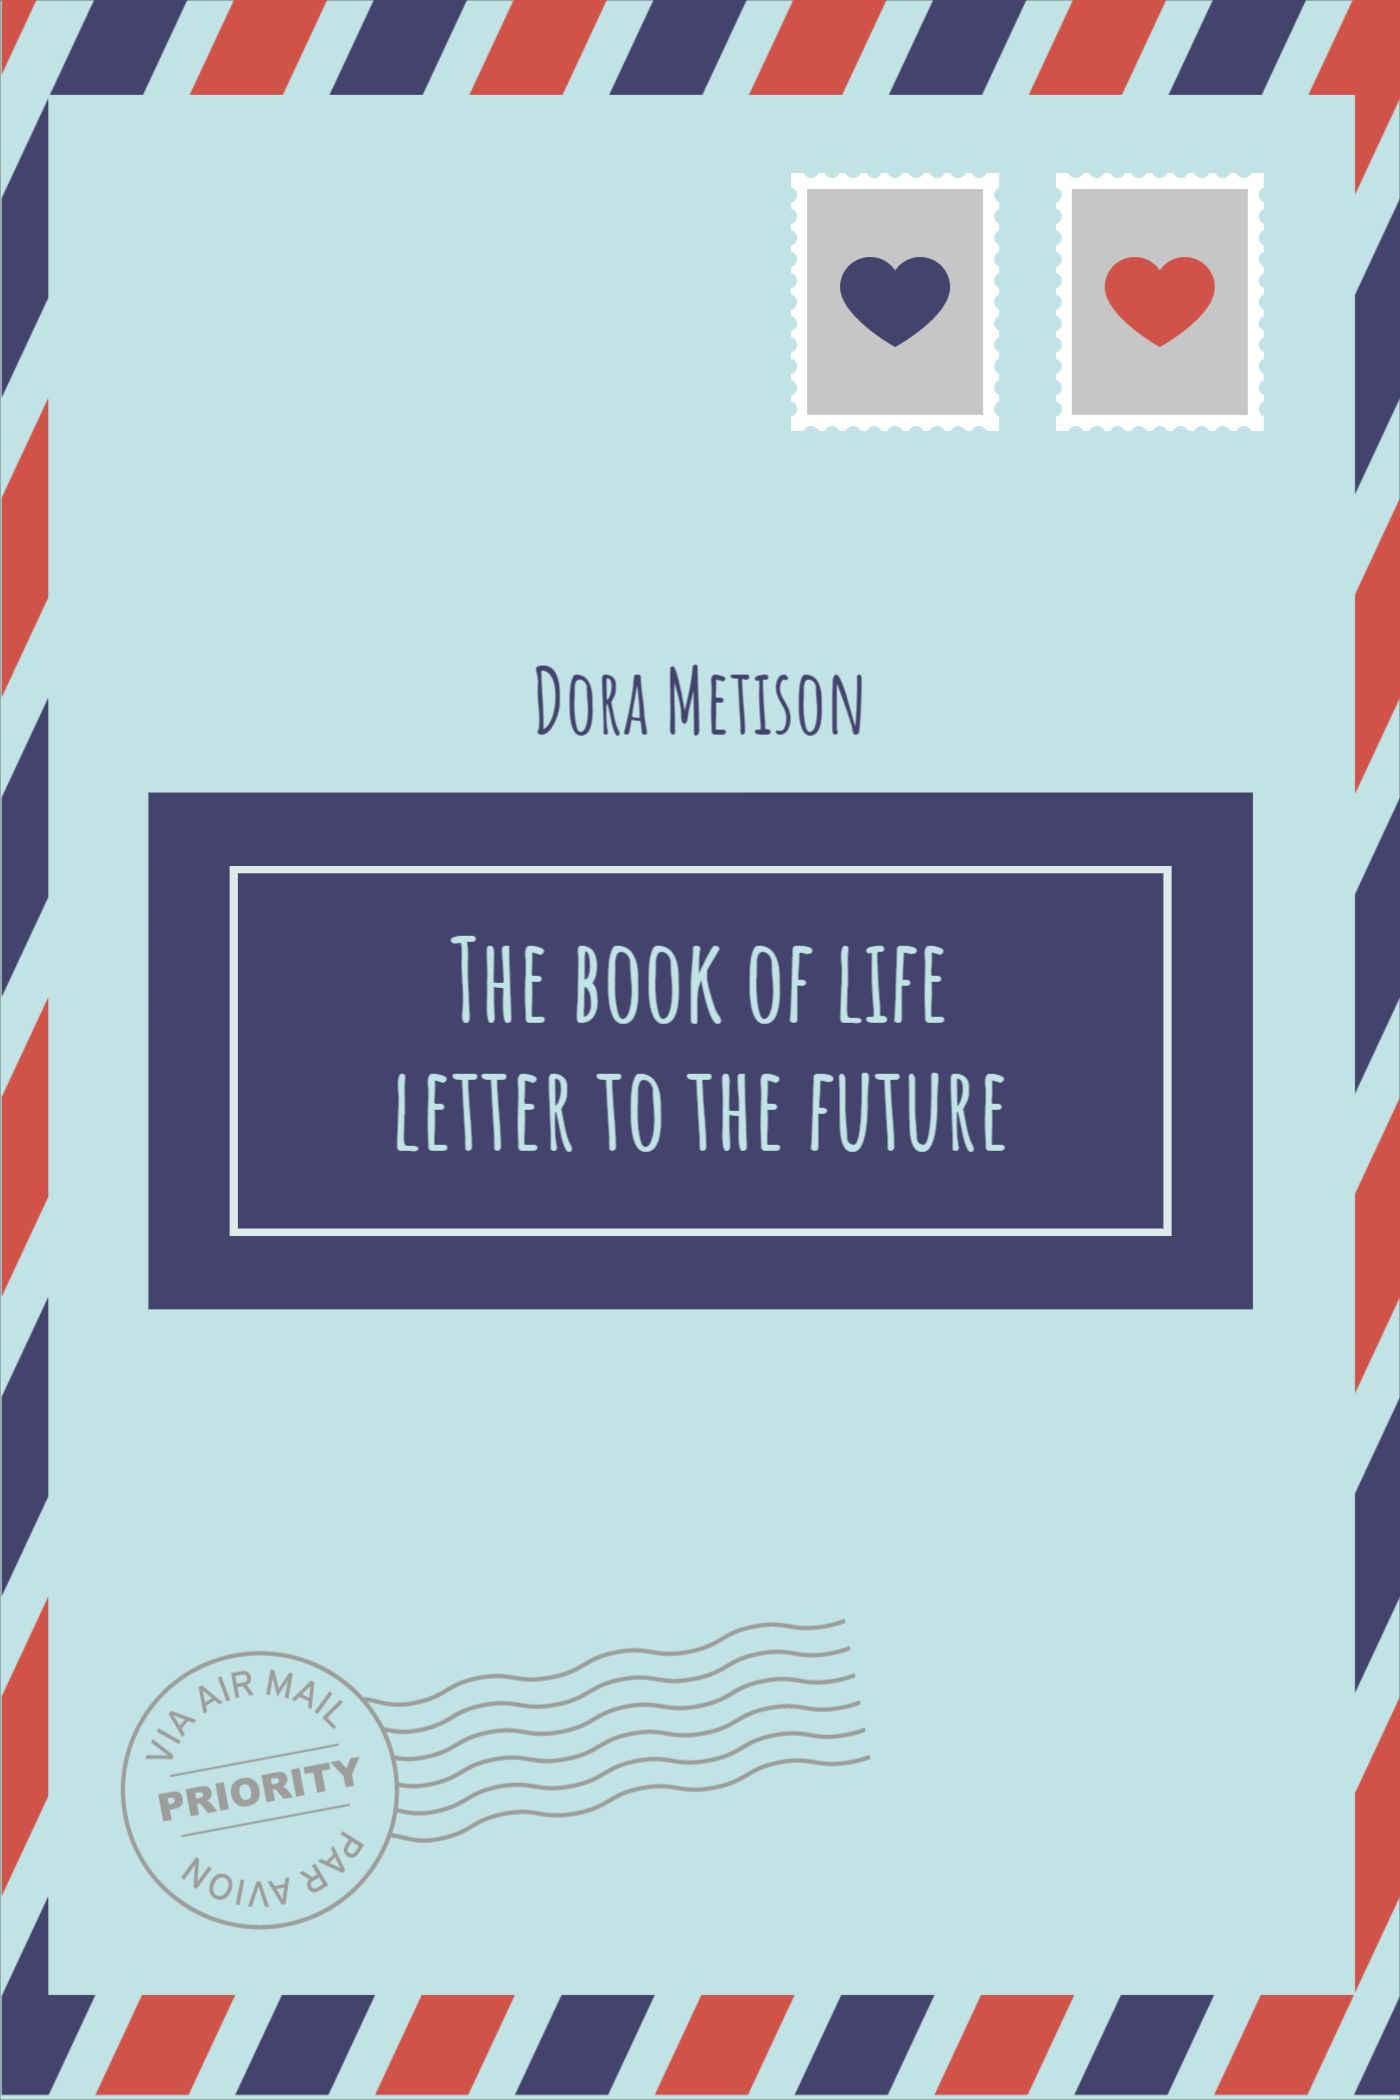 Letter Themed Book Cover Template